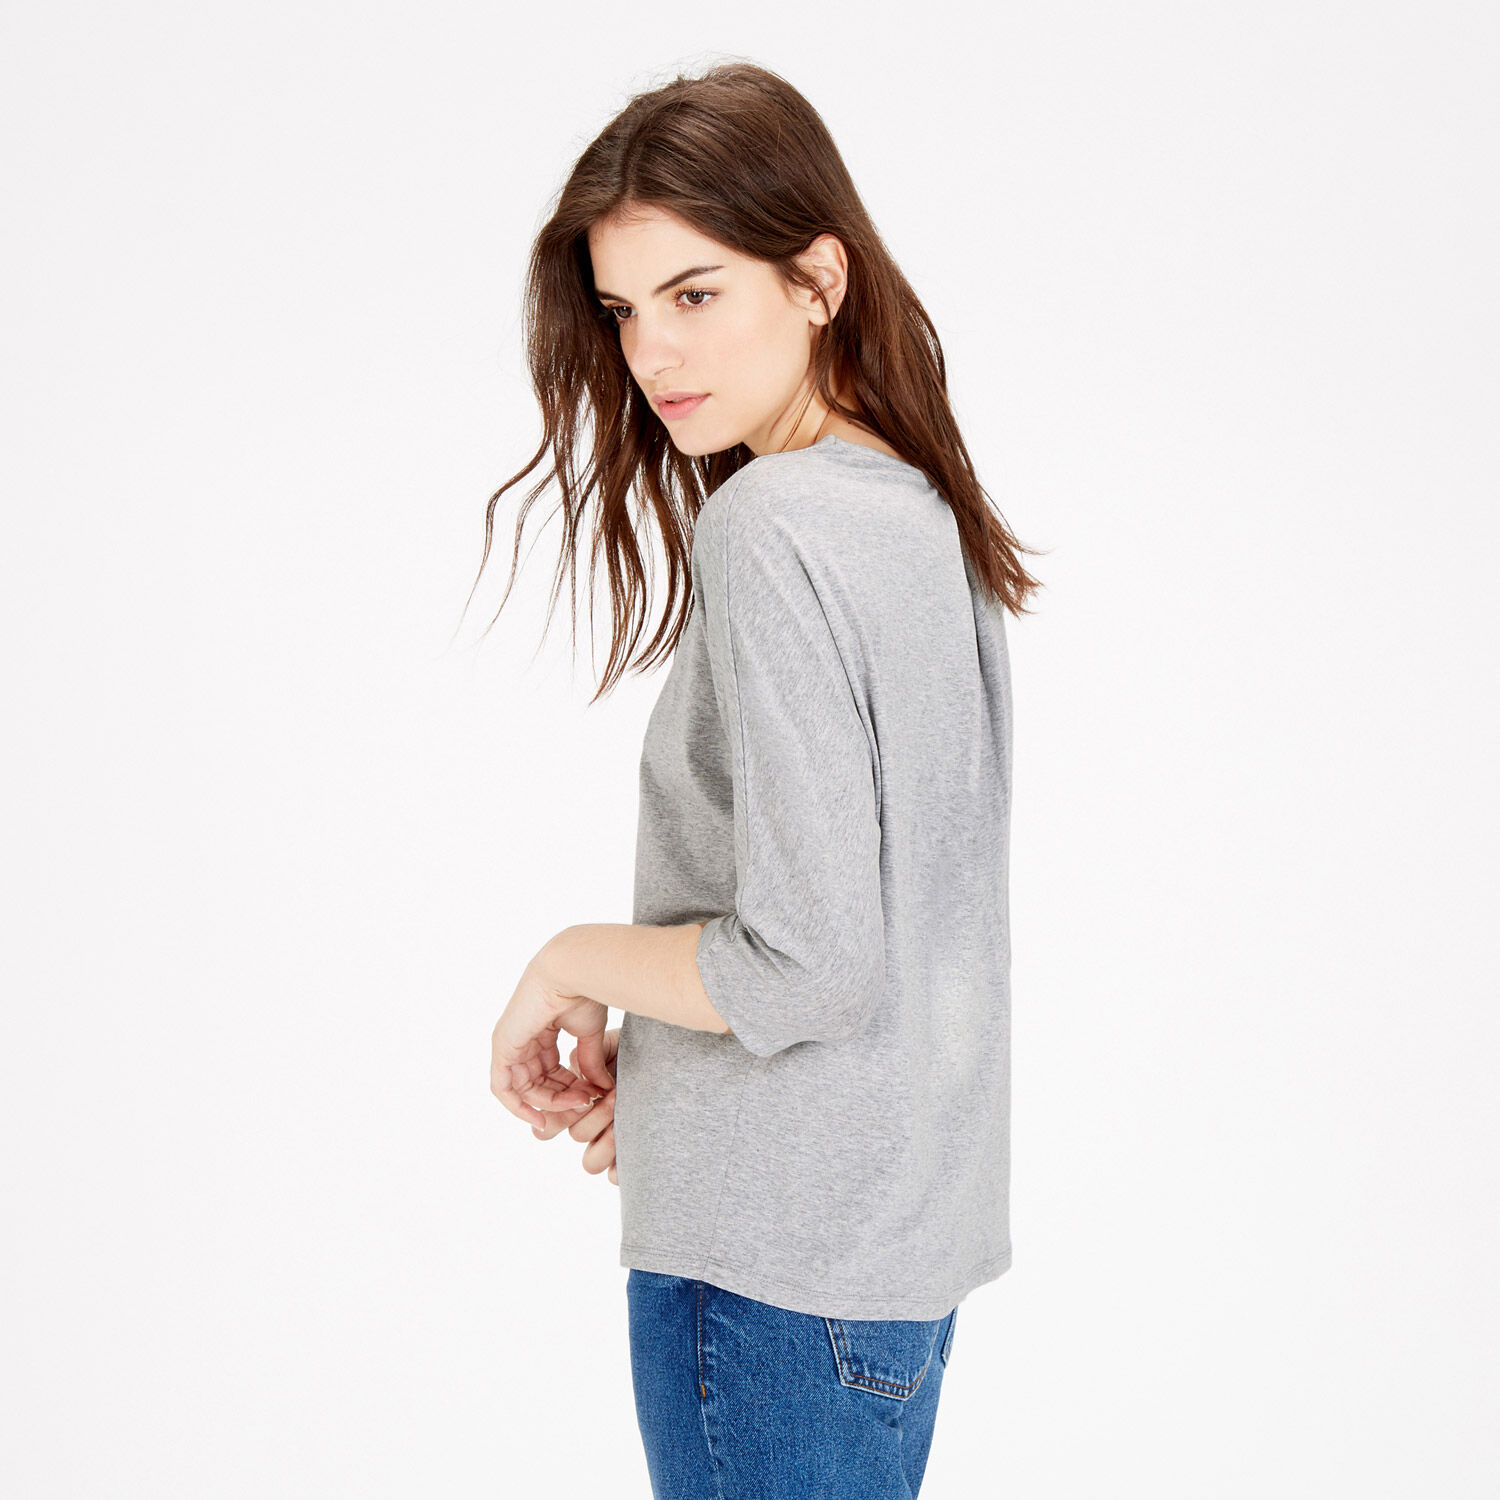 Warehouse, PLEAT BACK DETAIL TOP Light Grey 1